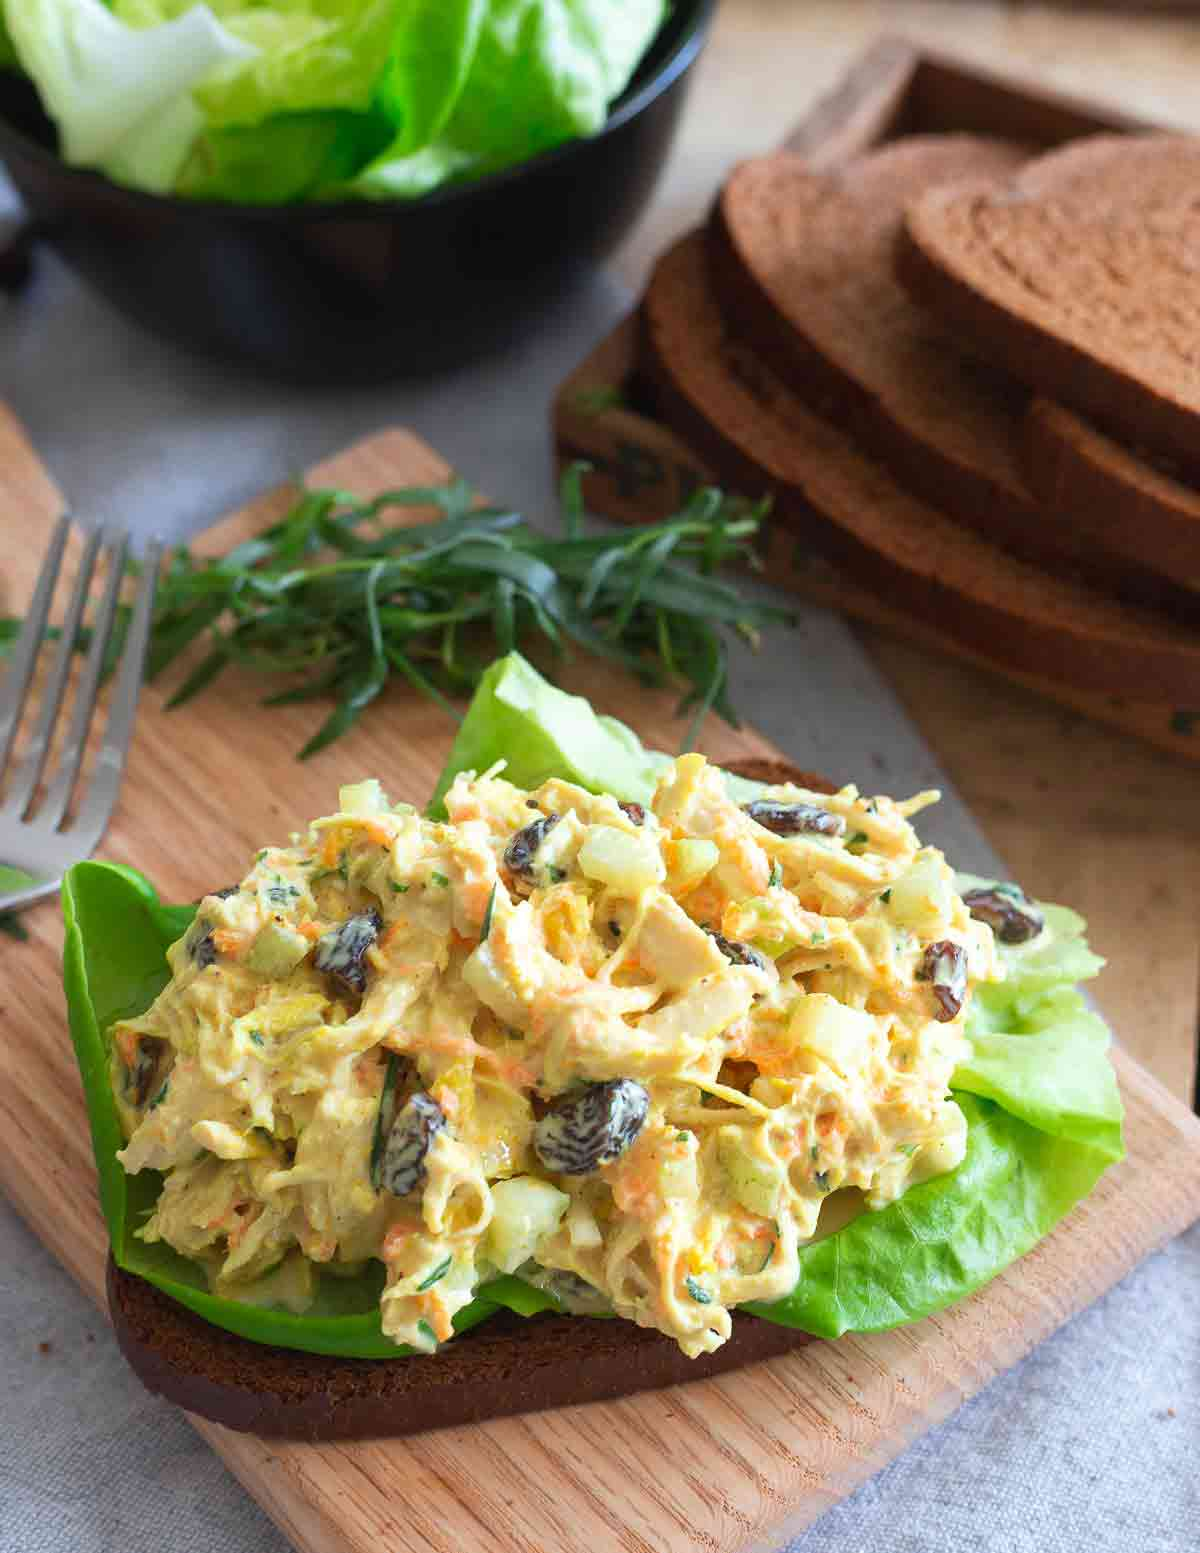 This chicken salad with turmeric uses fresh turmeric root for a nutritious anti-oxidant boost to this creamy, crunchy, gluten-free lunch salad.